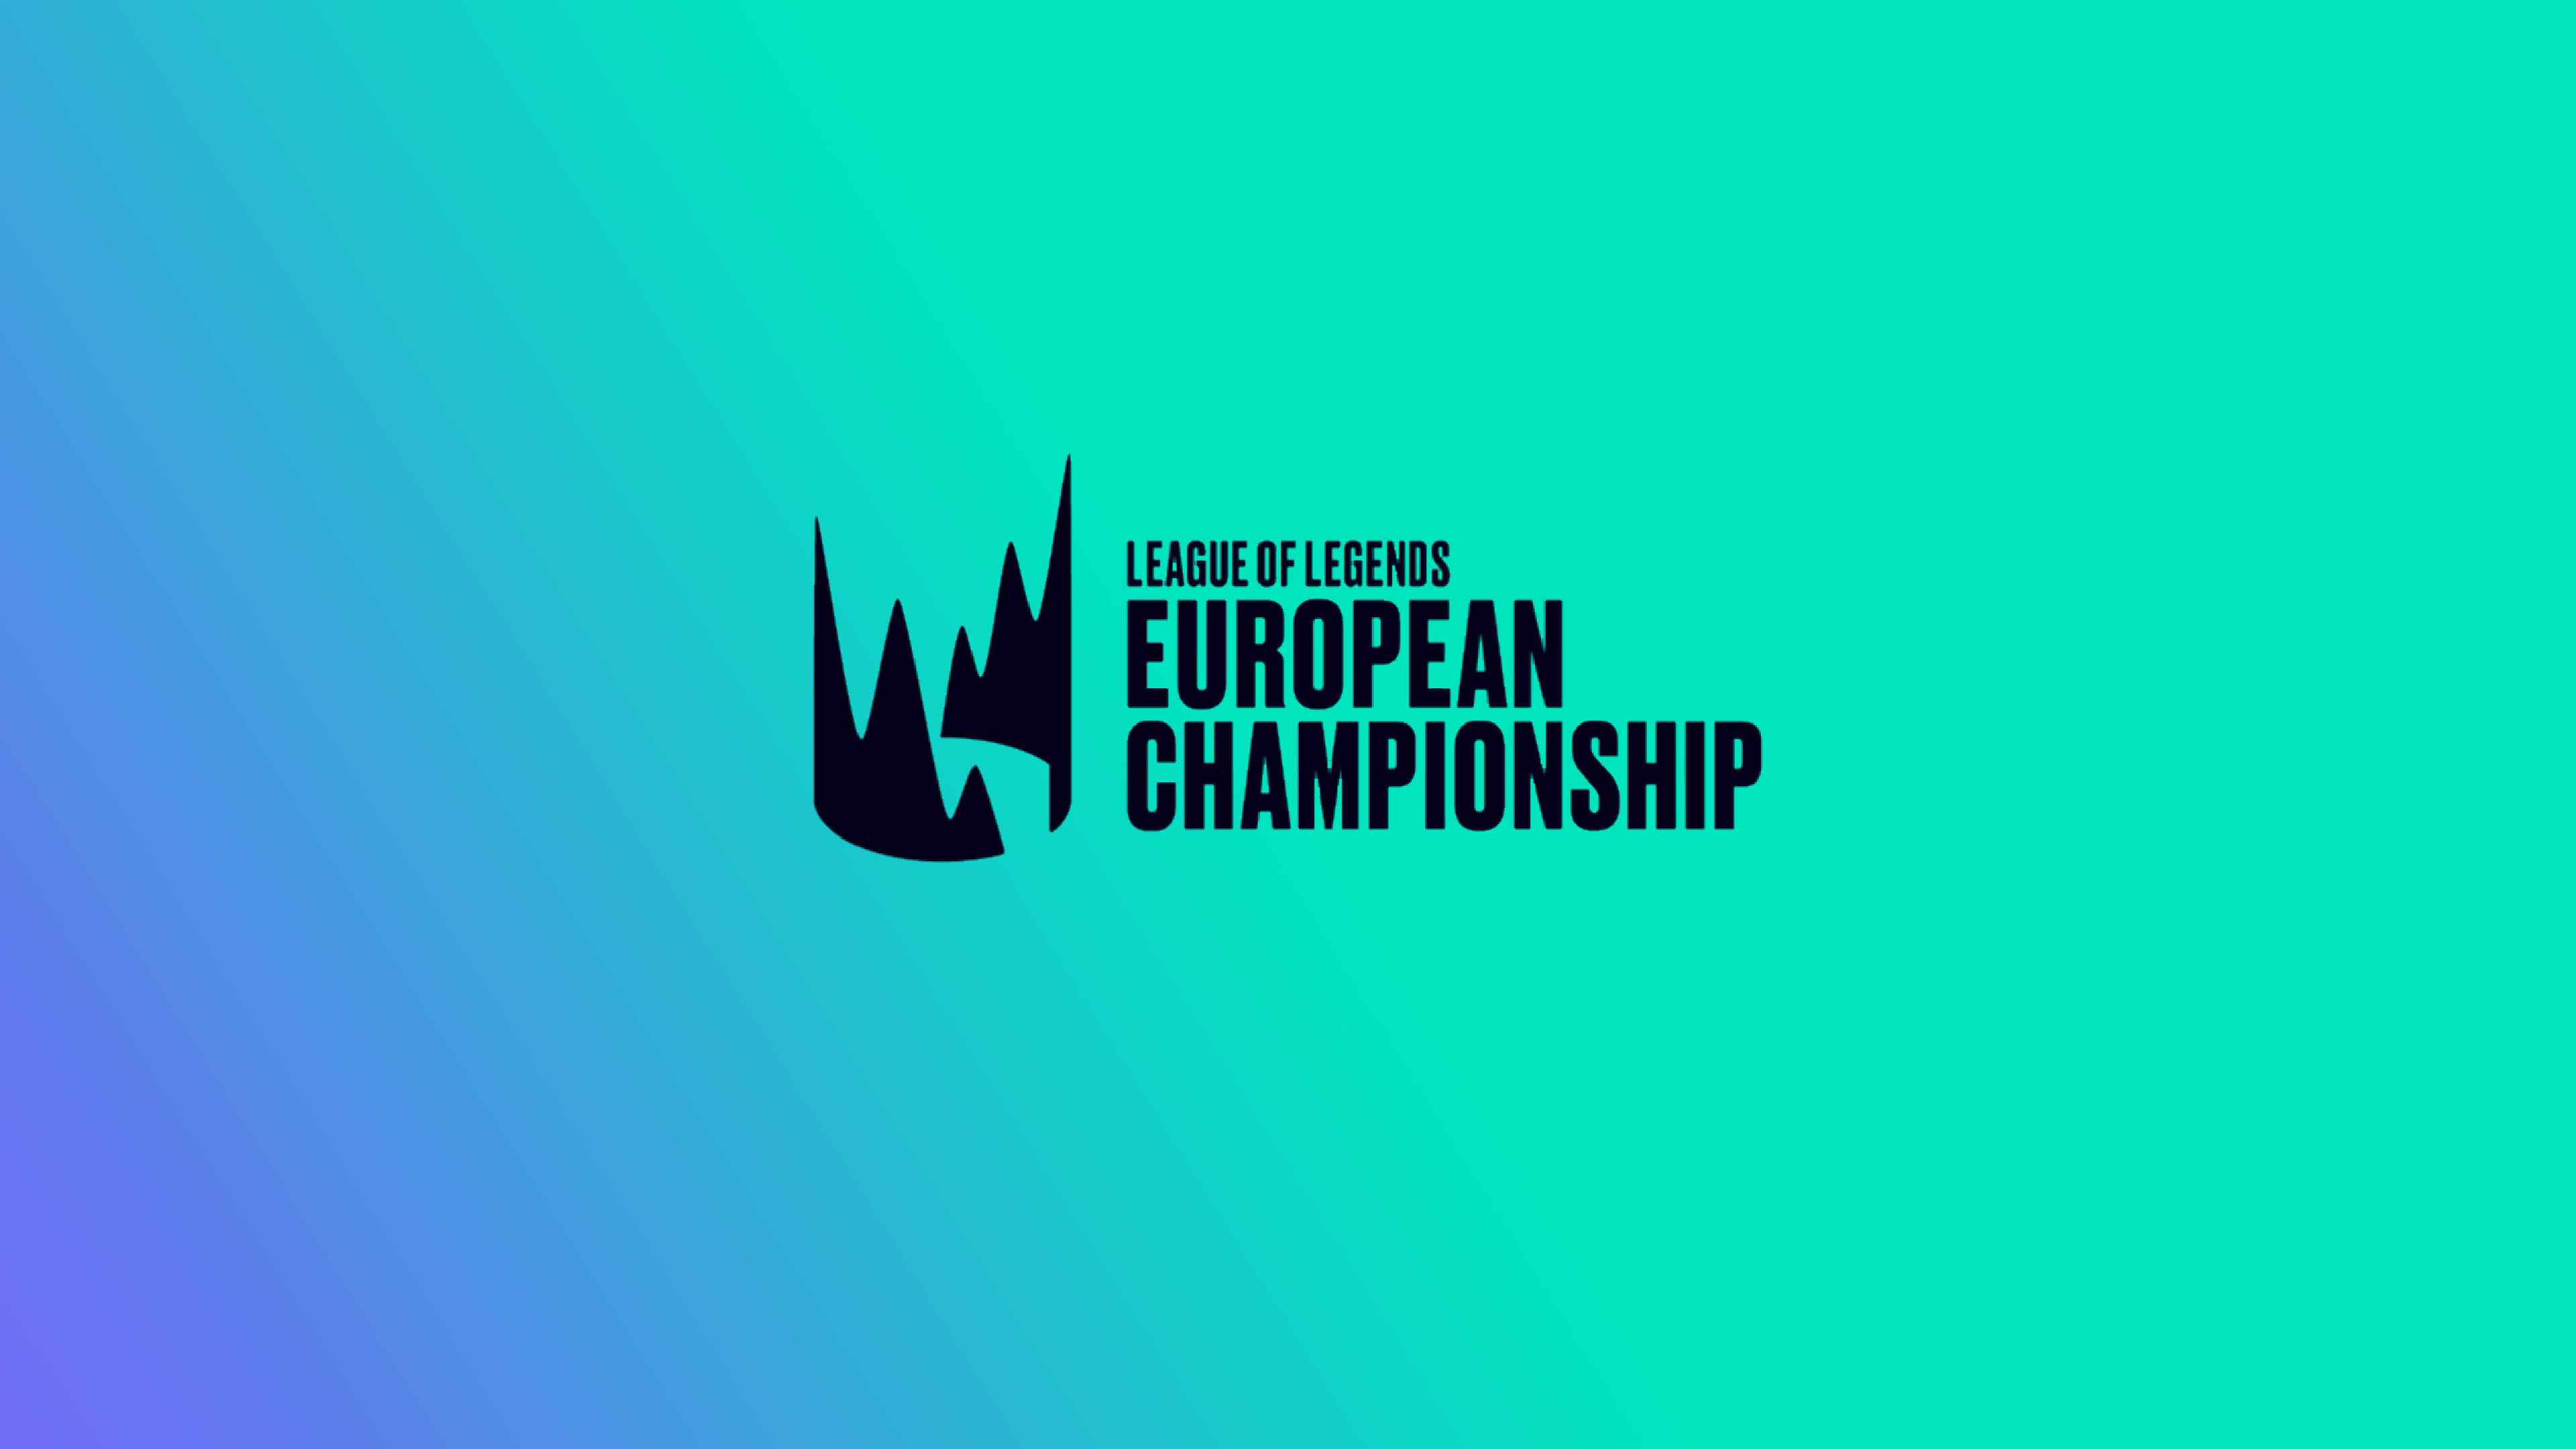 LEC – The Final Summer Split League European Championship Match Between G2 Esports And Fnatic Broke Viewership Record